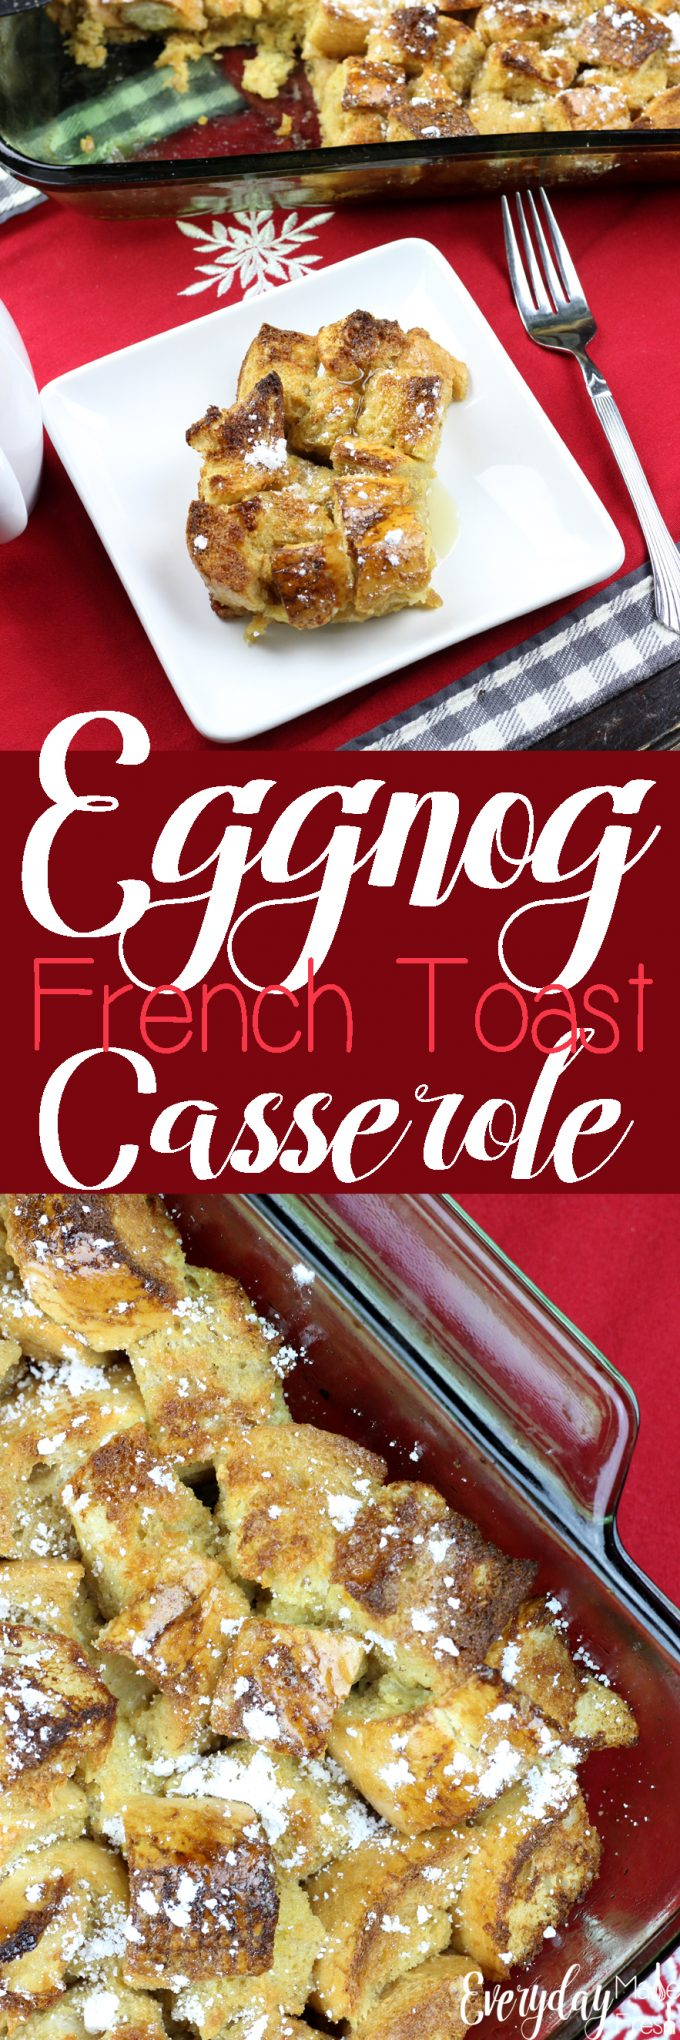 Nothing says Christmas quite like eggnog! Which is why Eggnog French Toast Casserole is the perfect holiday breakfast! Eggnog, vanilla, and cinnamon give this traditional casserole some holiday flair. | EverydayMadeFresh.com